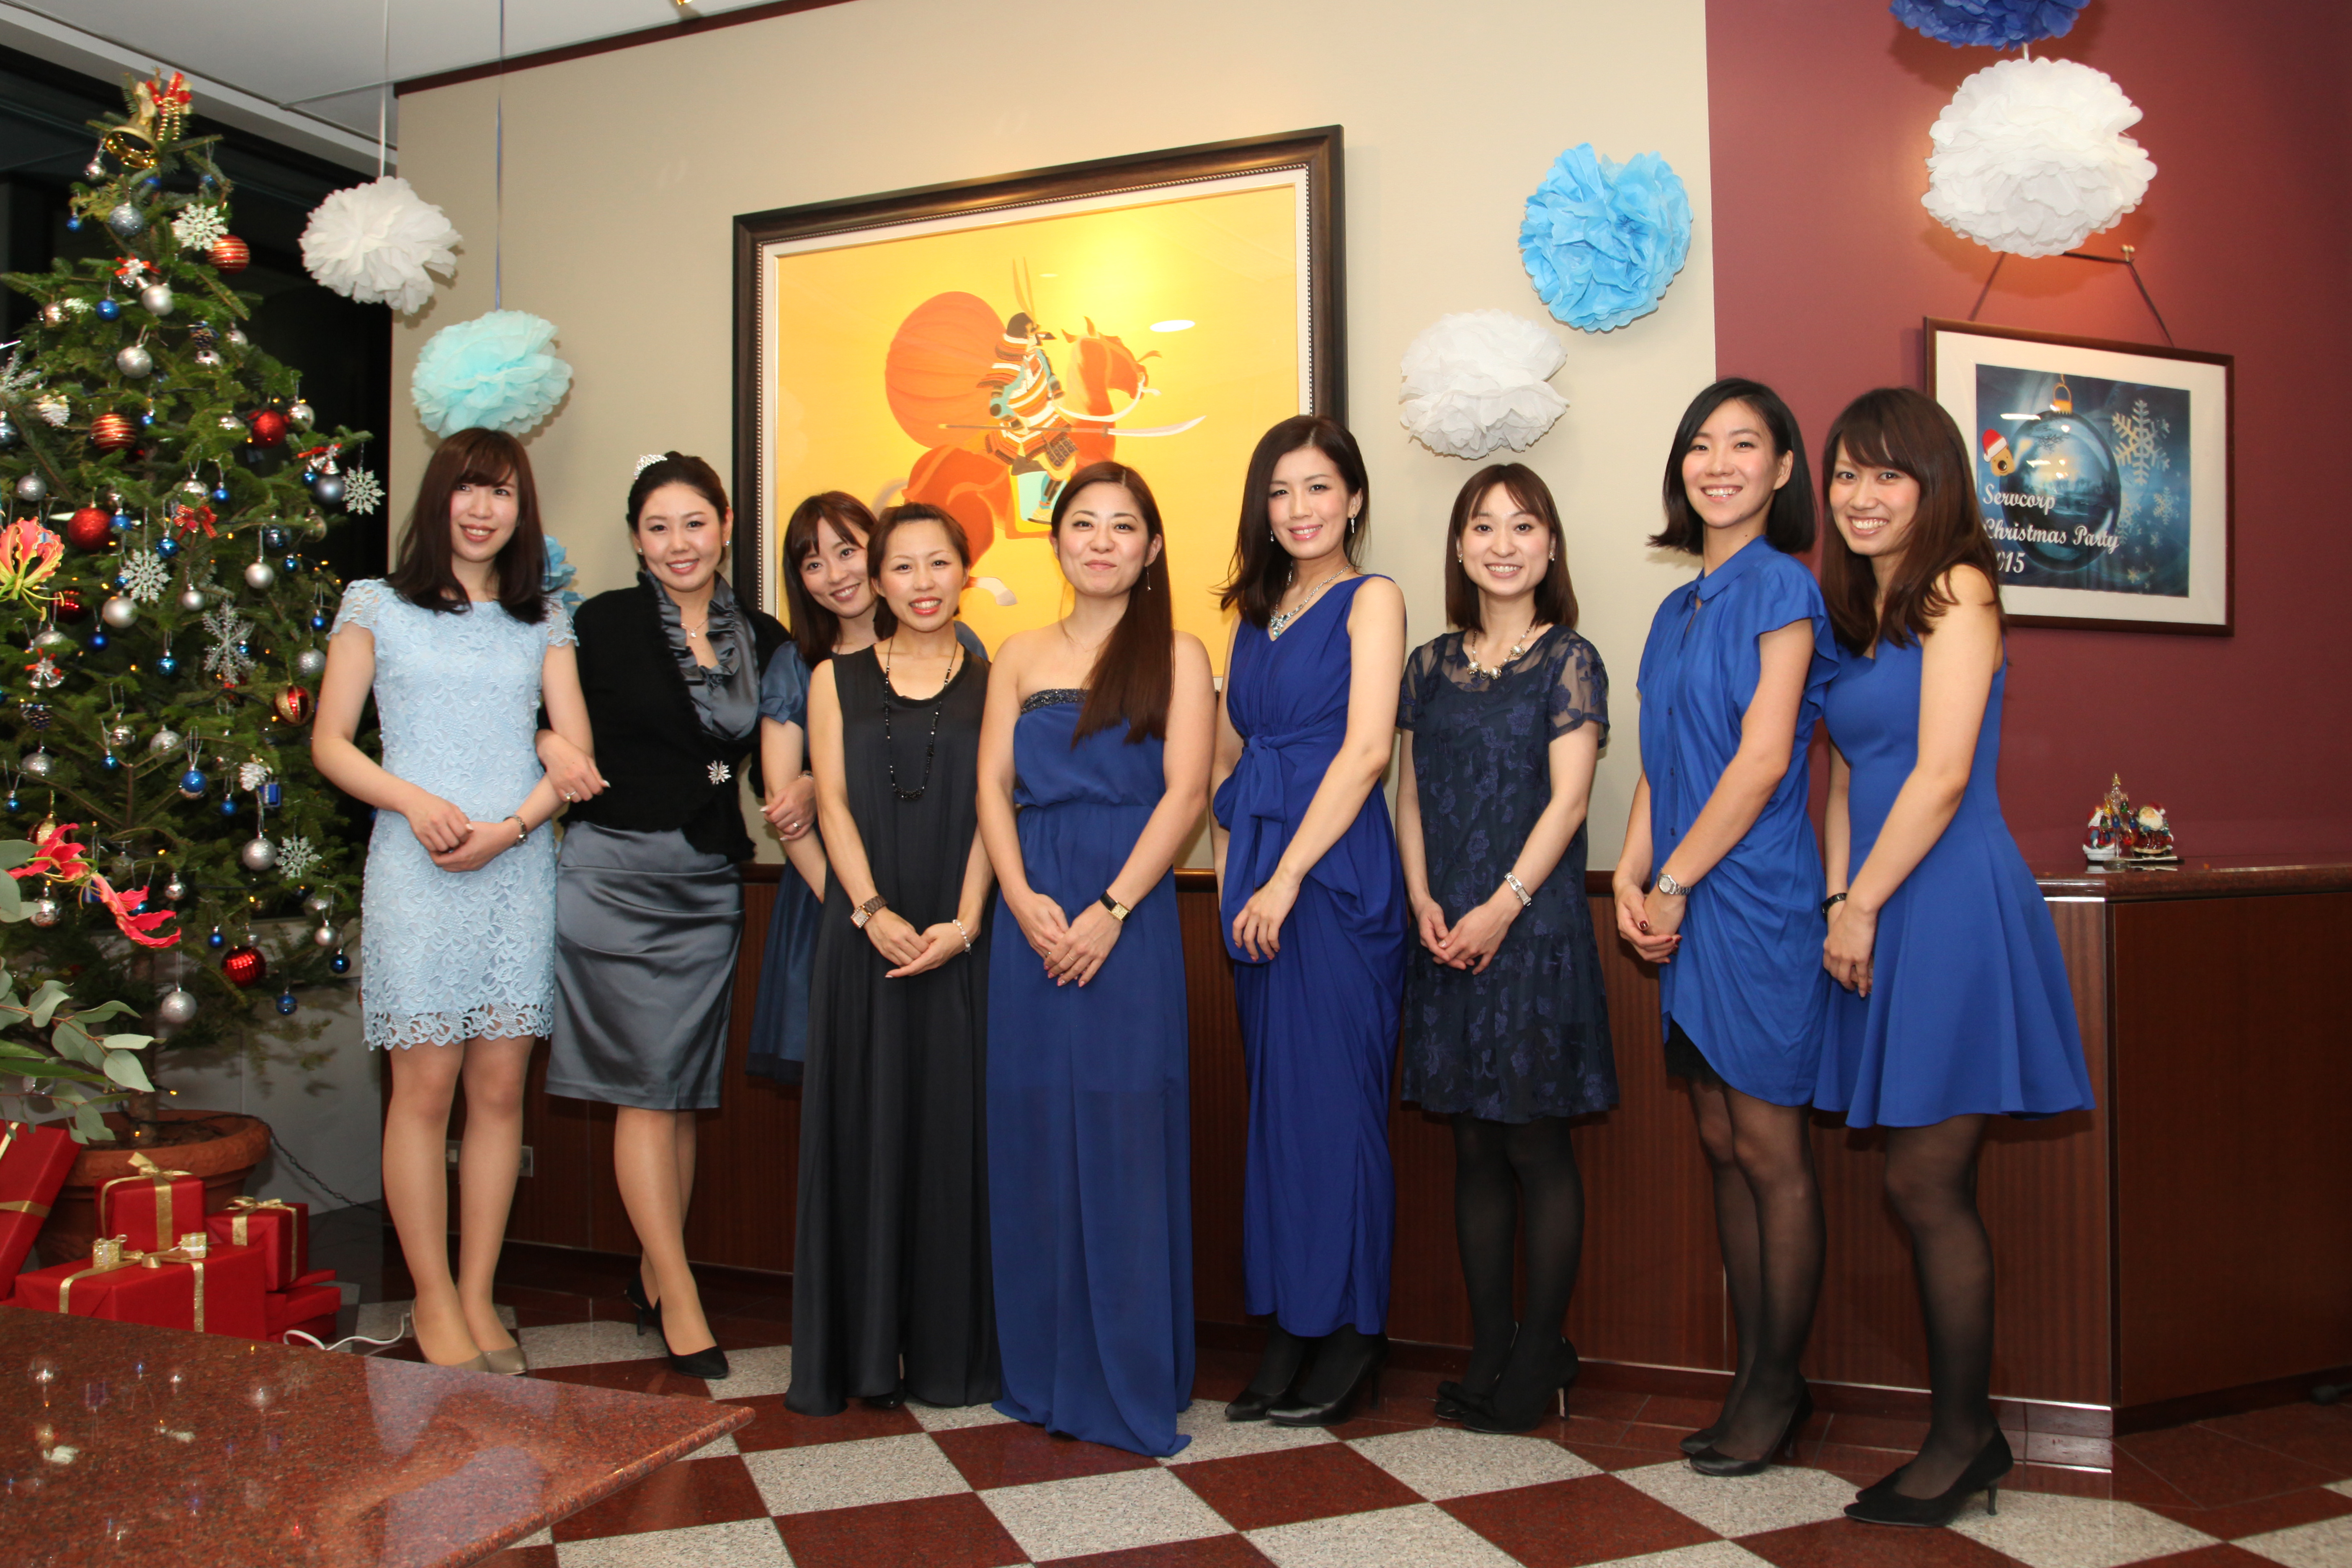 aoyama rental office staff for a christmas servcorp party 2015